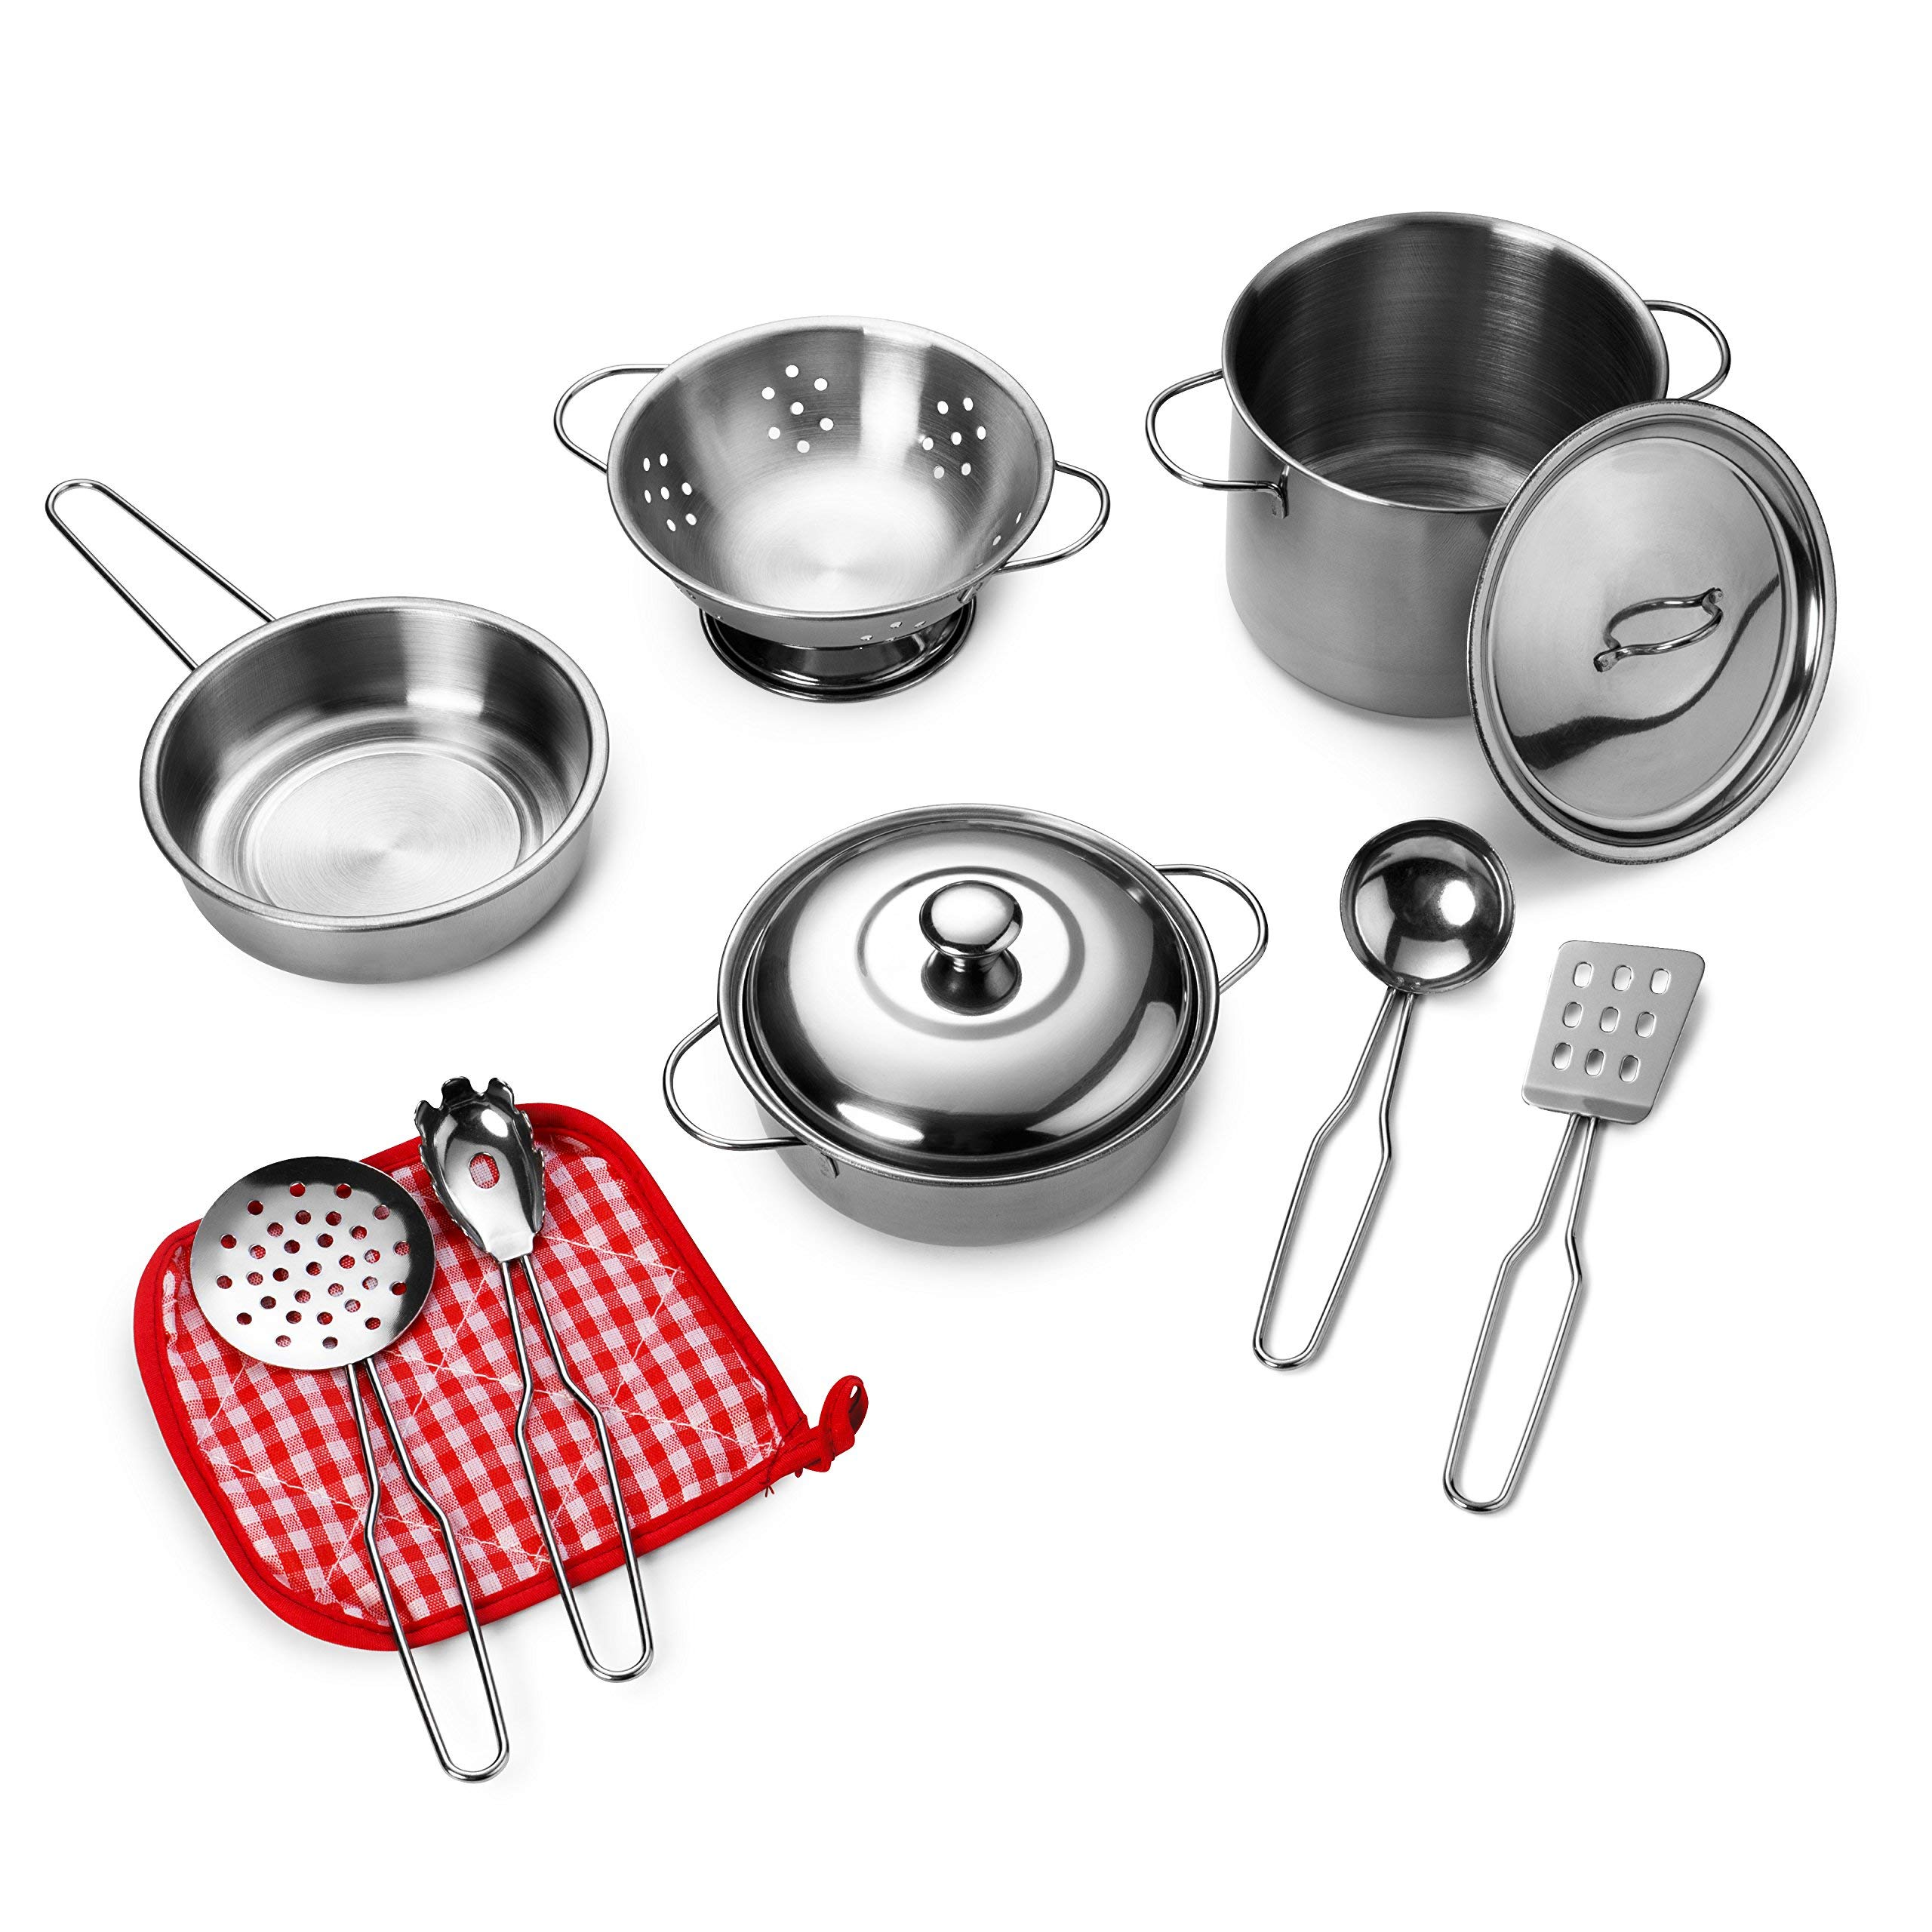 Playkidz: Super Durable 11 Piece Stainless Steel Pots and Pans Cookware Playset for kids Pretend Play House!